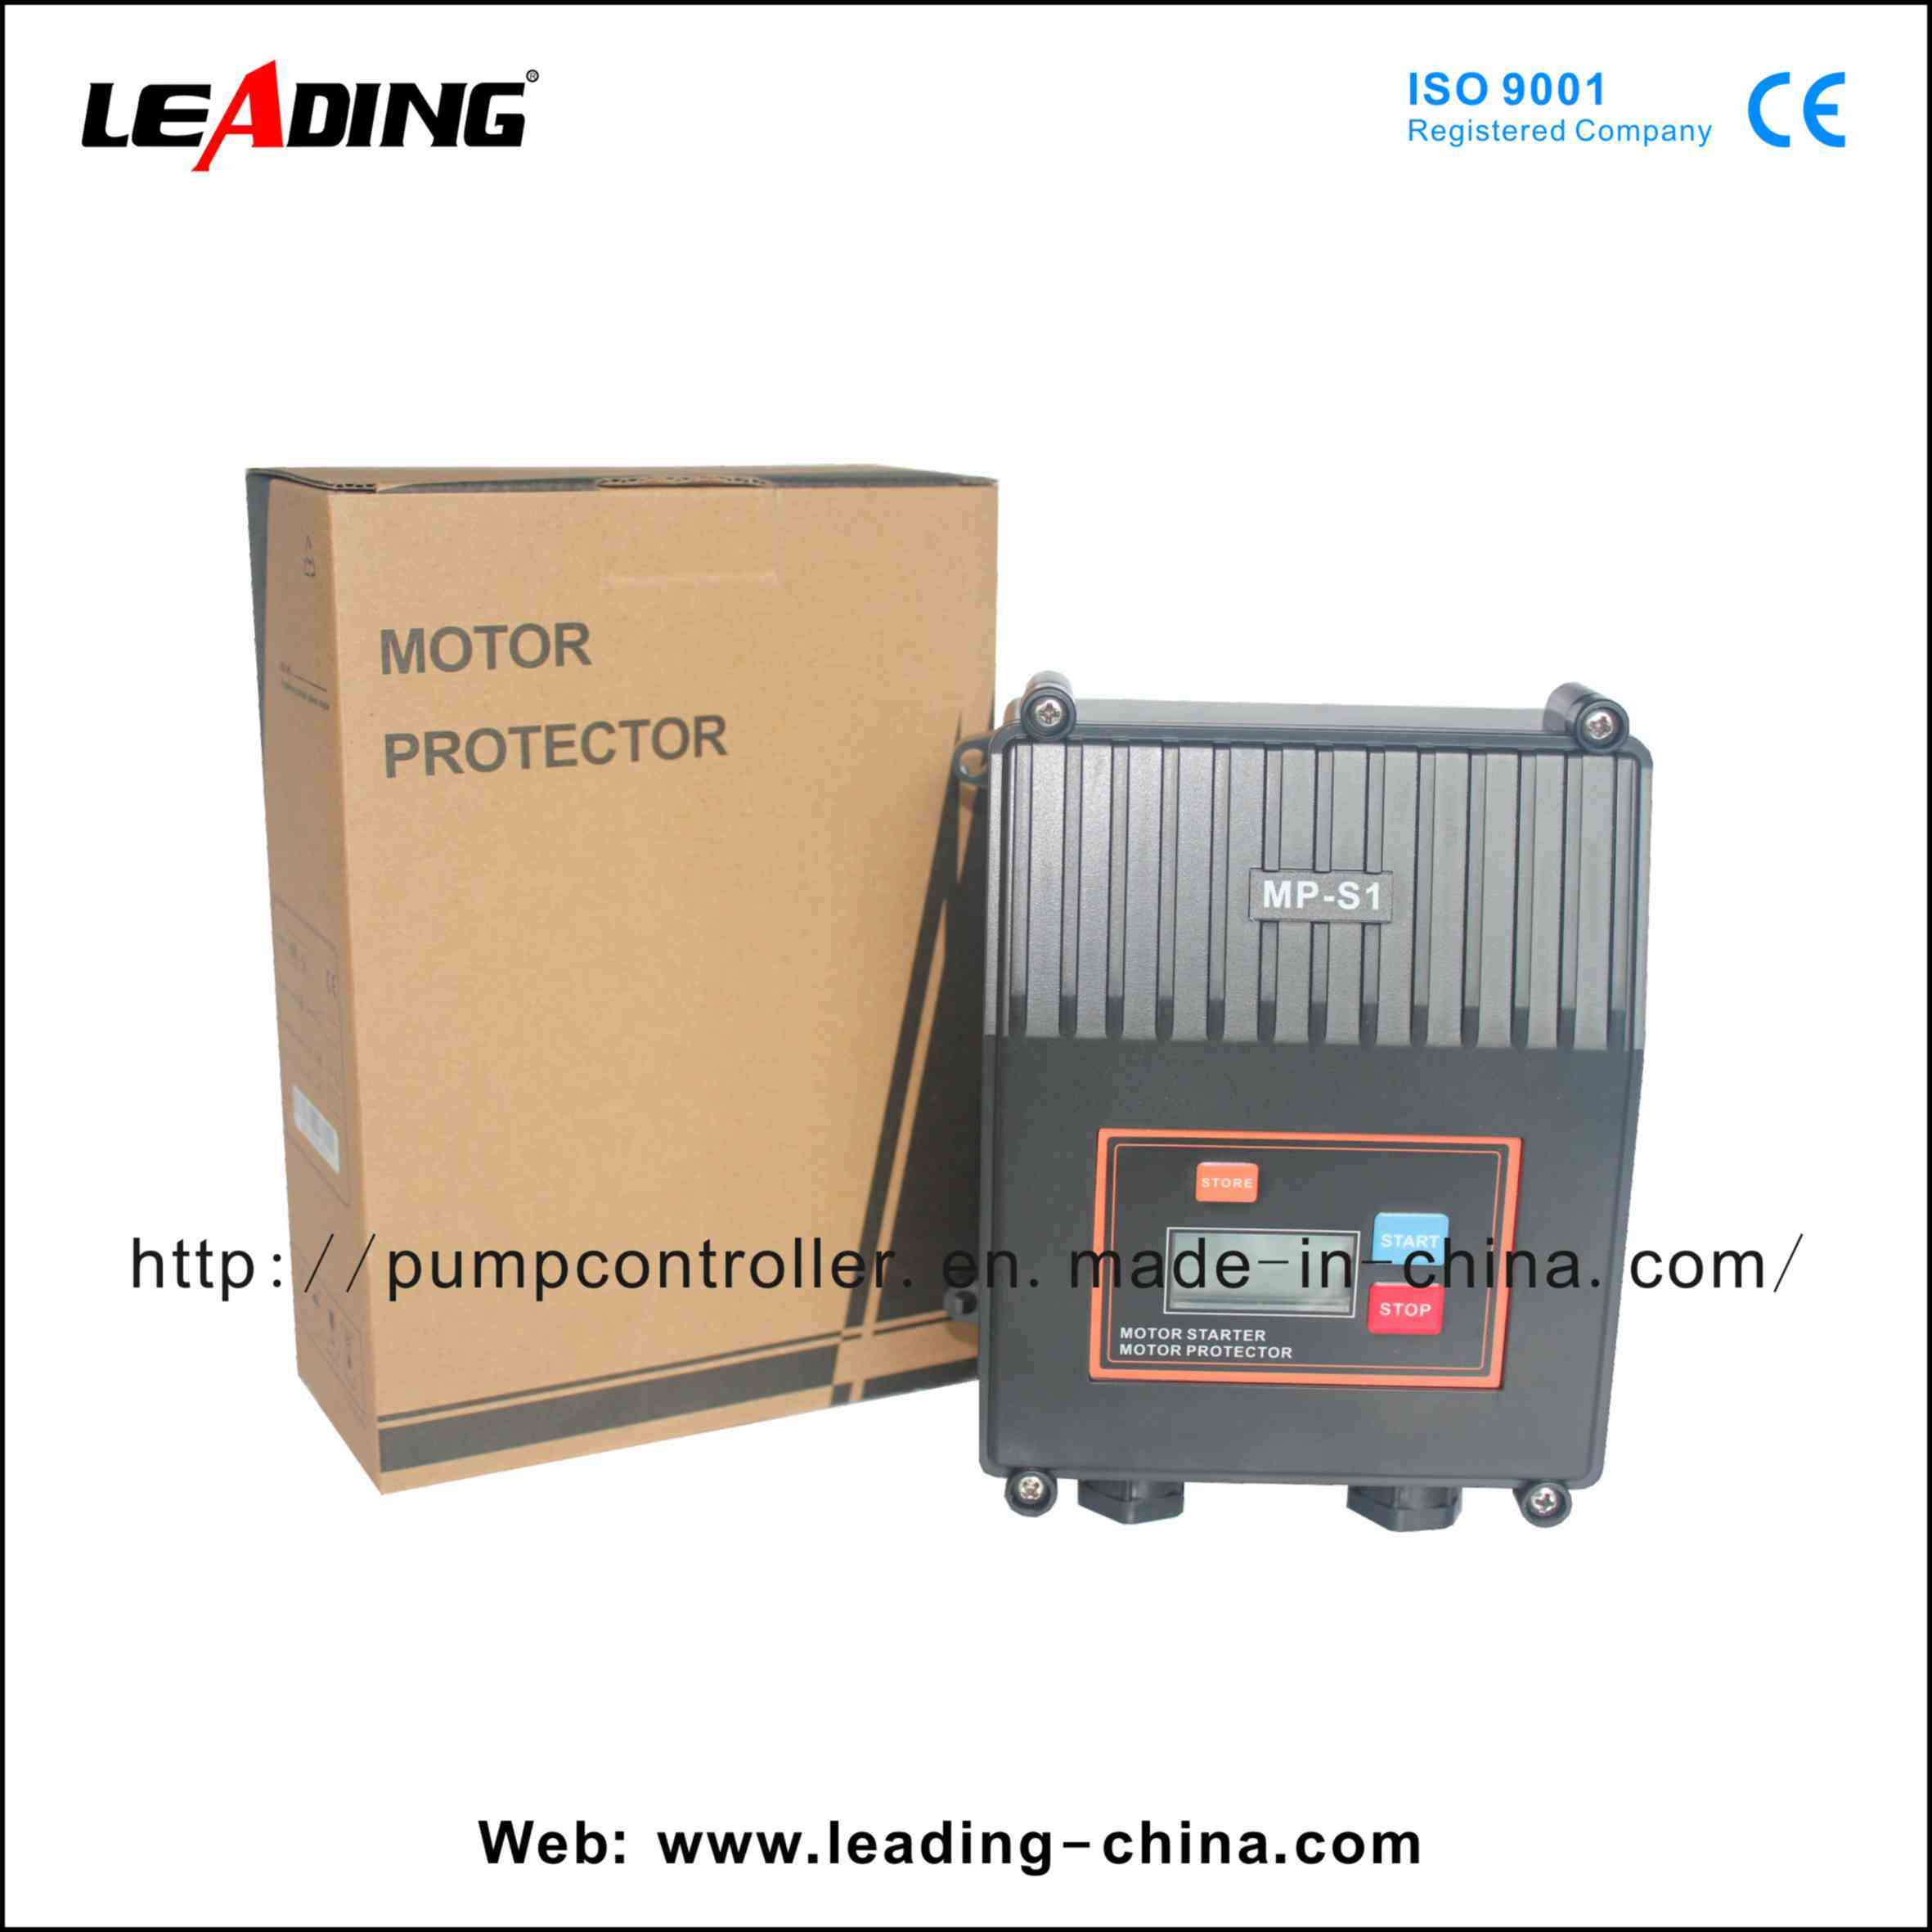 China Single Phase Motor Starter Protector Mp S1 Photos